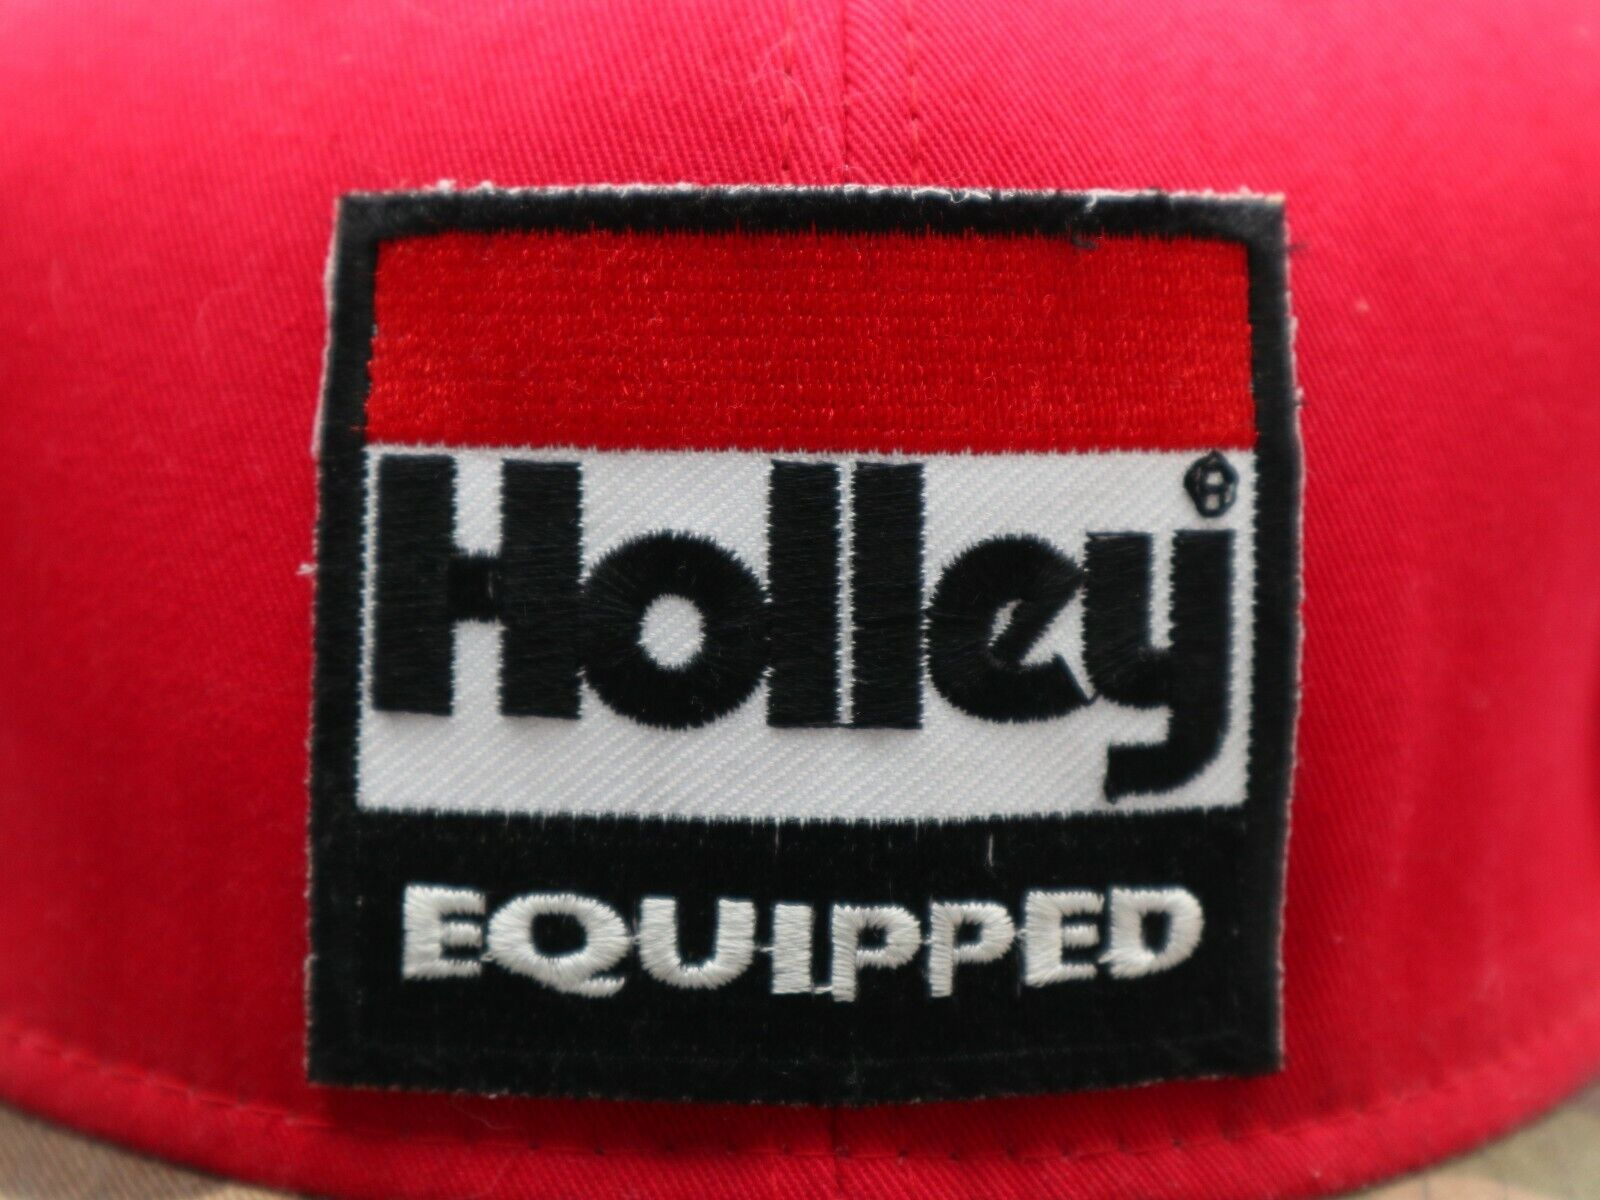 Holley Equipped red camo snapback - image 2